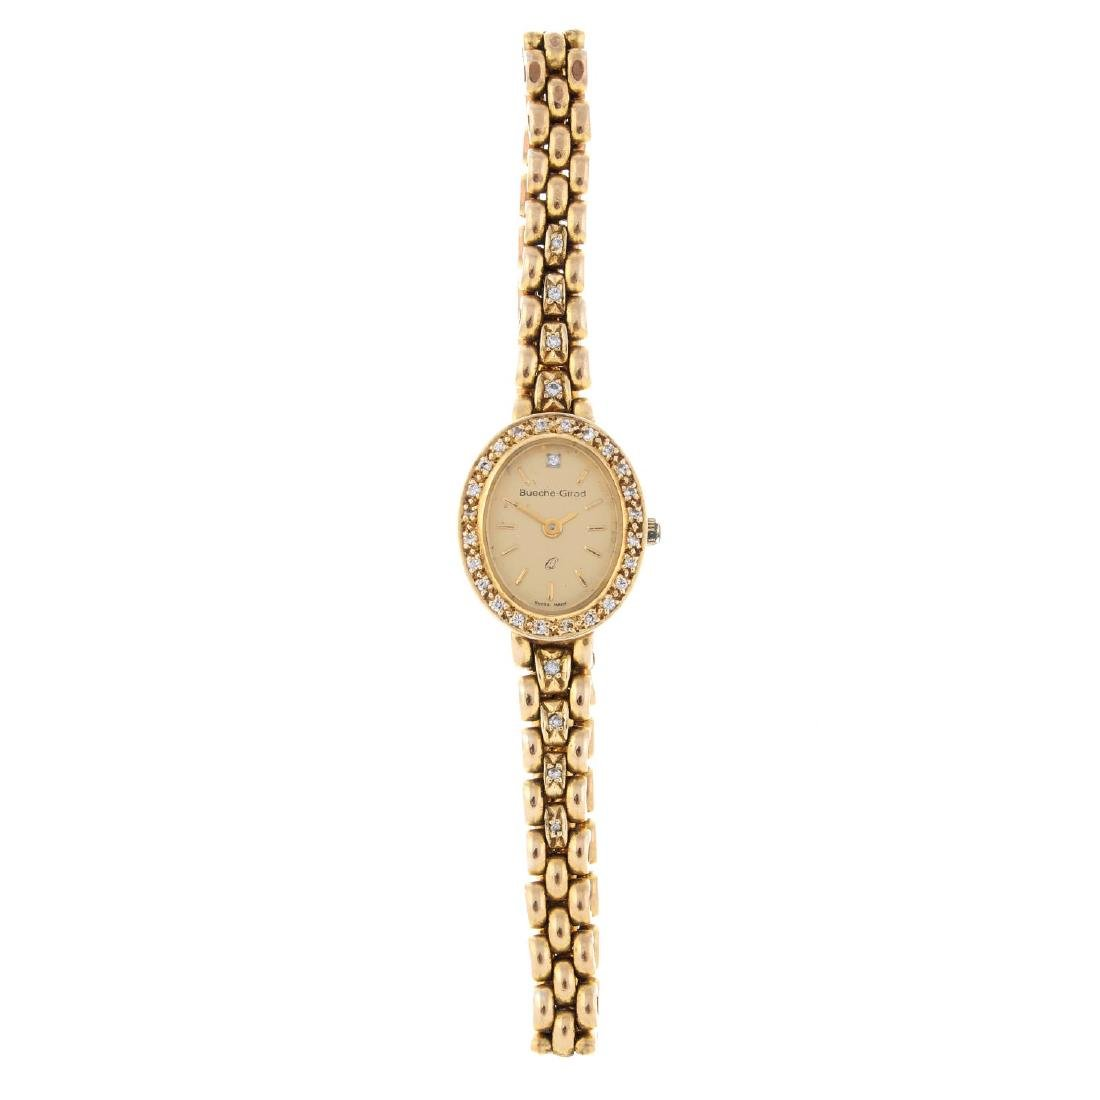 BUECHE-GIROD - a lady's bracelet watch. 9ct yellow gold